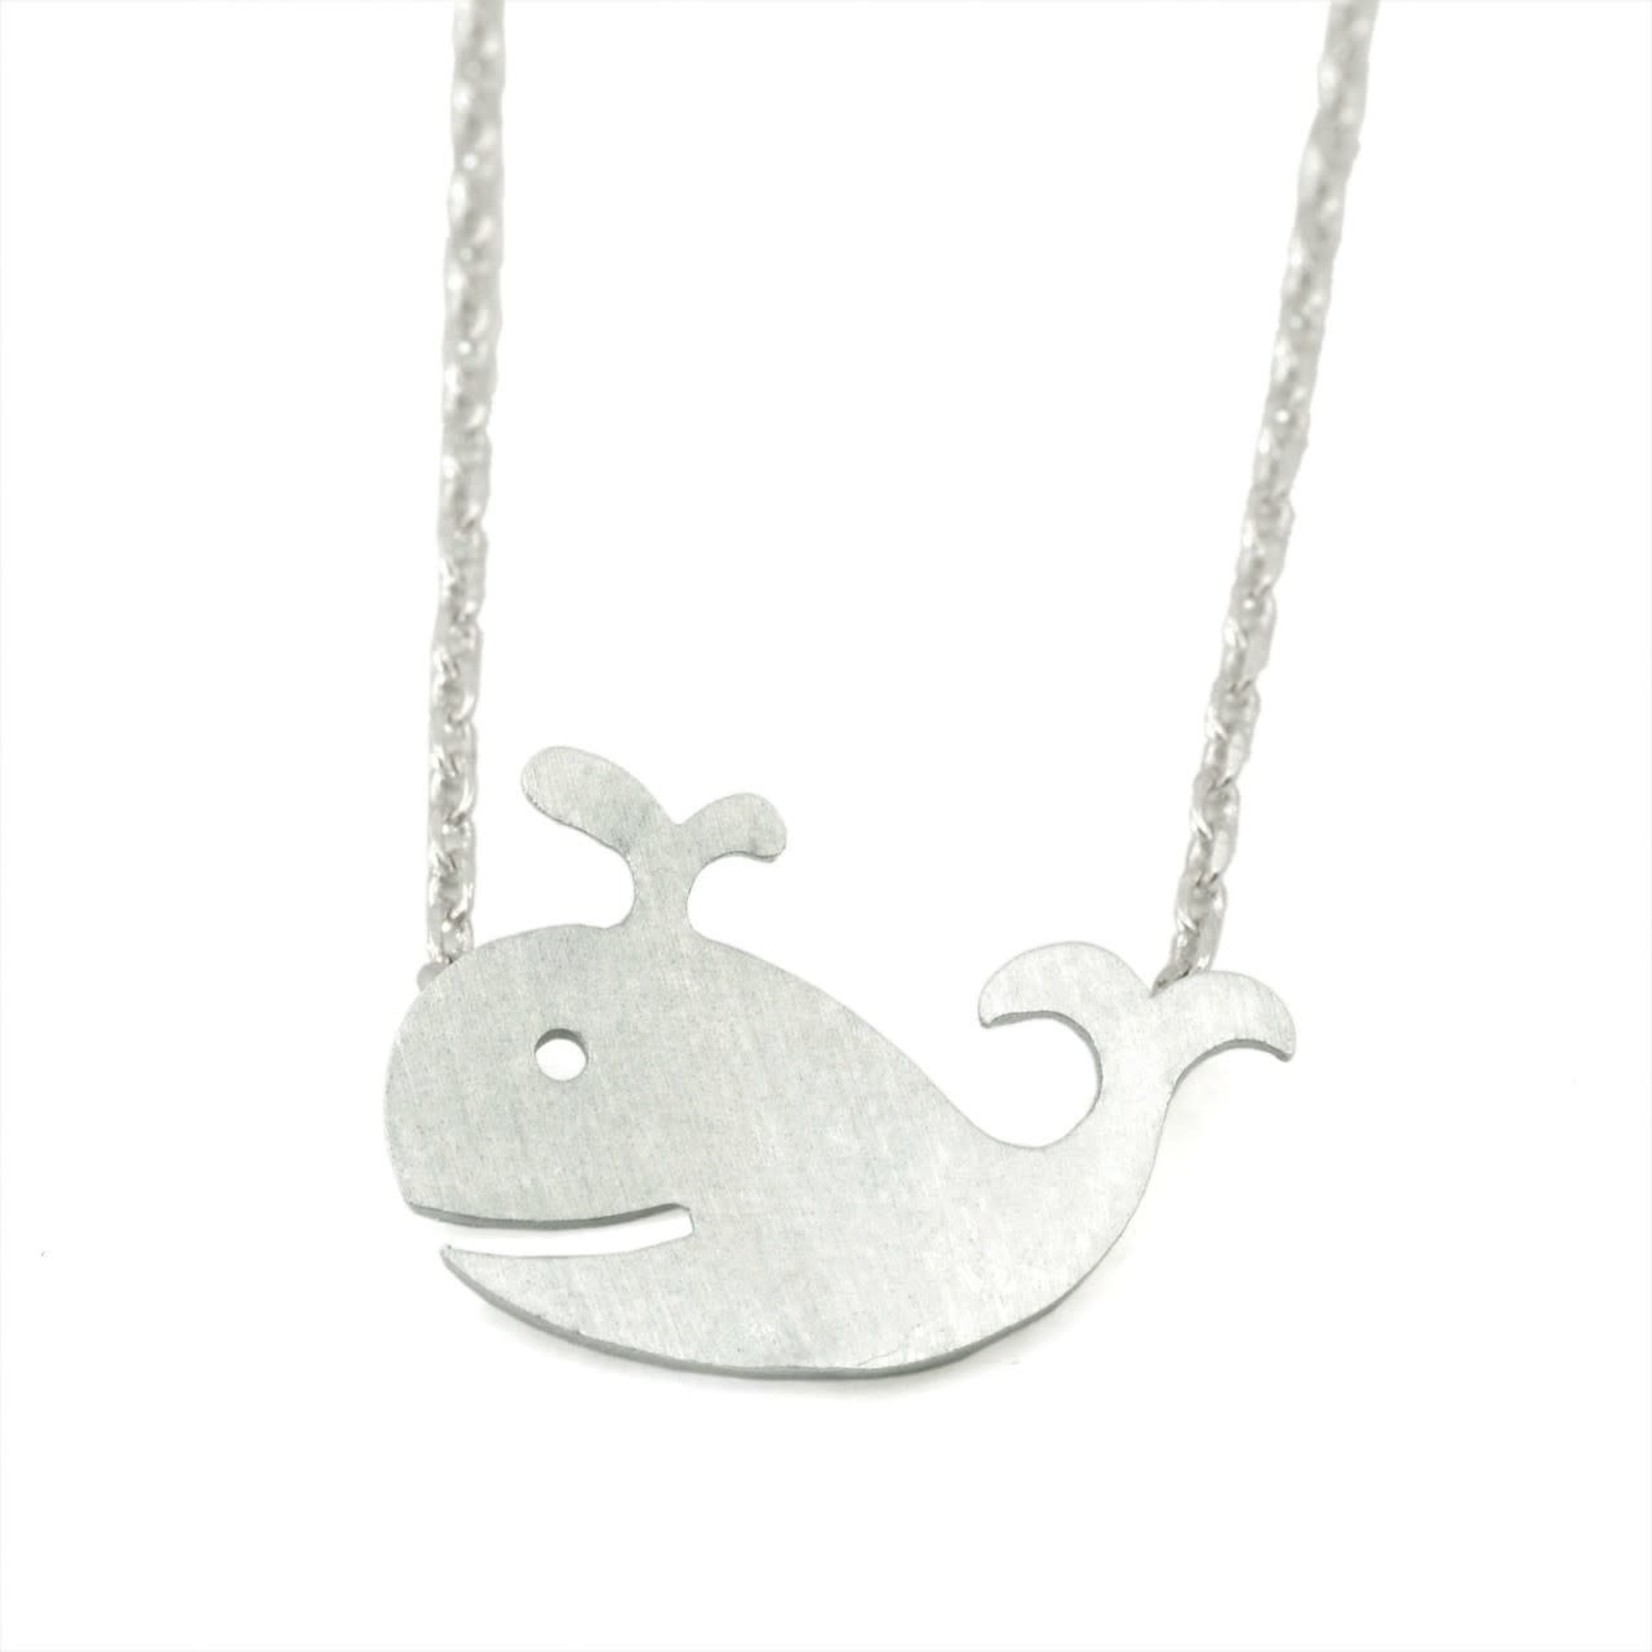 Ocean Wise Whale Necklace Silver